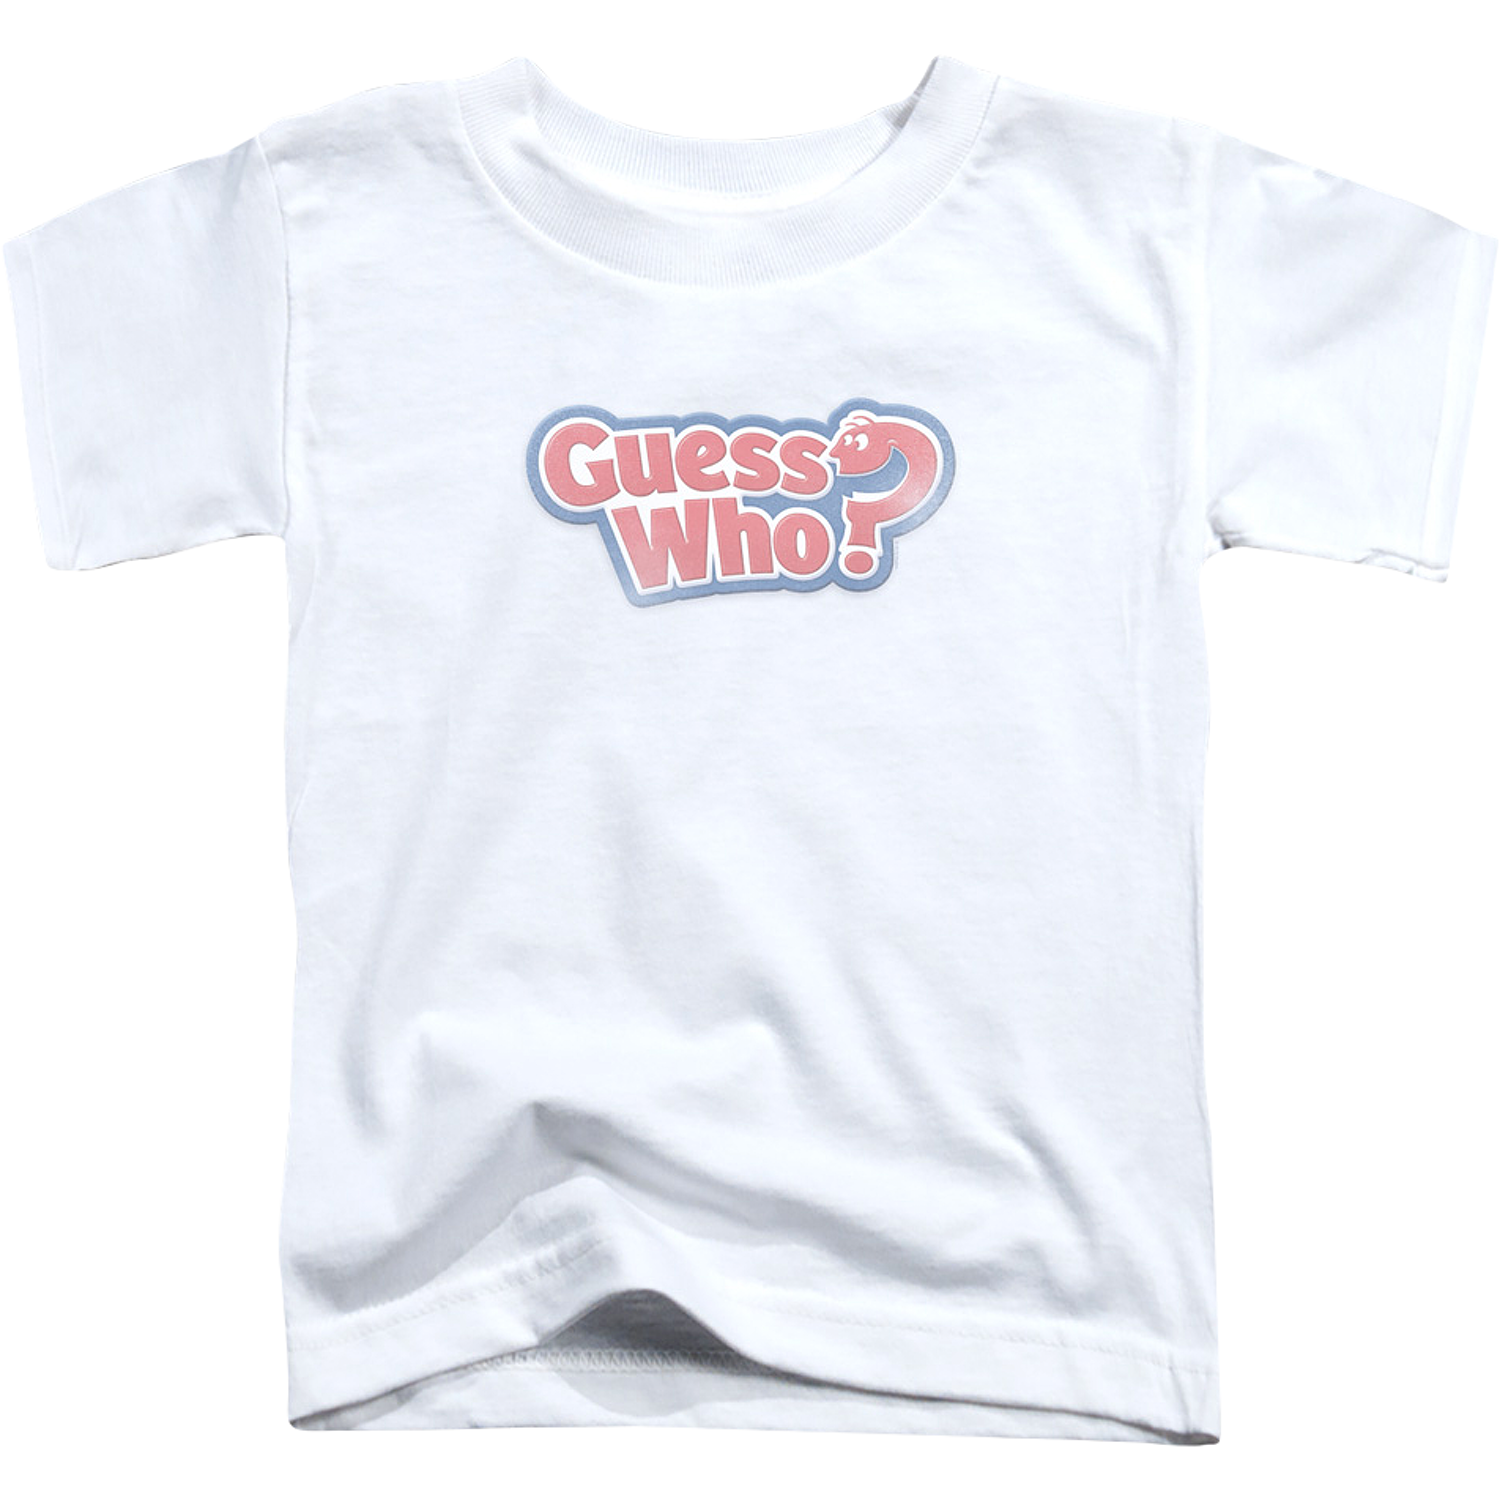 youth guess who shirt Unisex T-Shirt All Color Size Up To 5XL